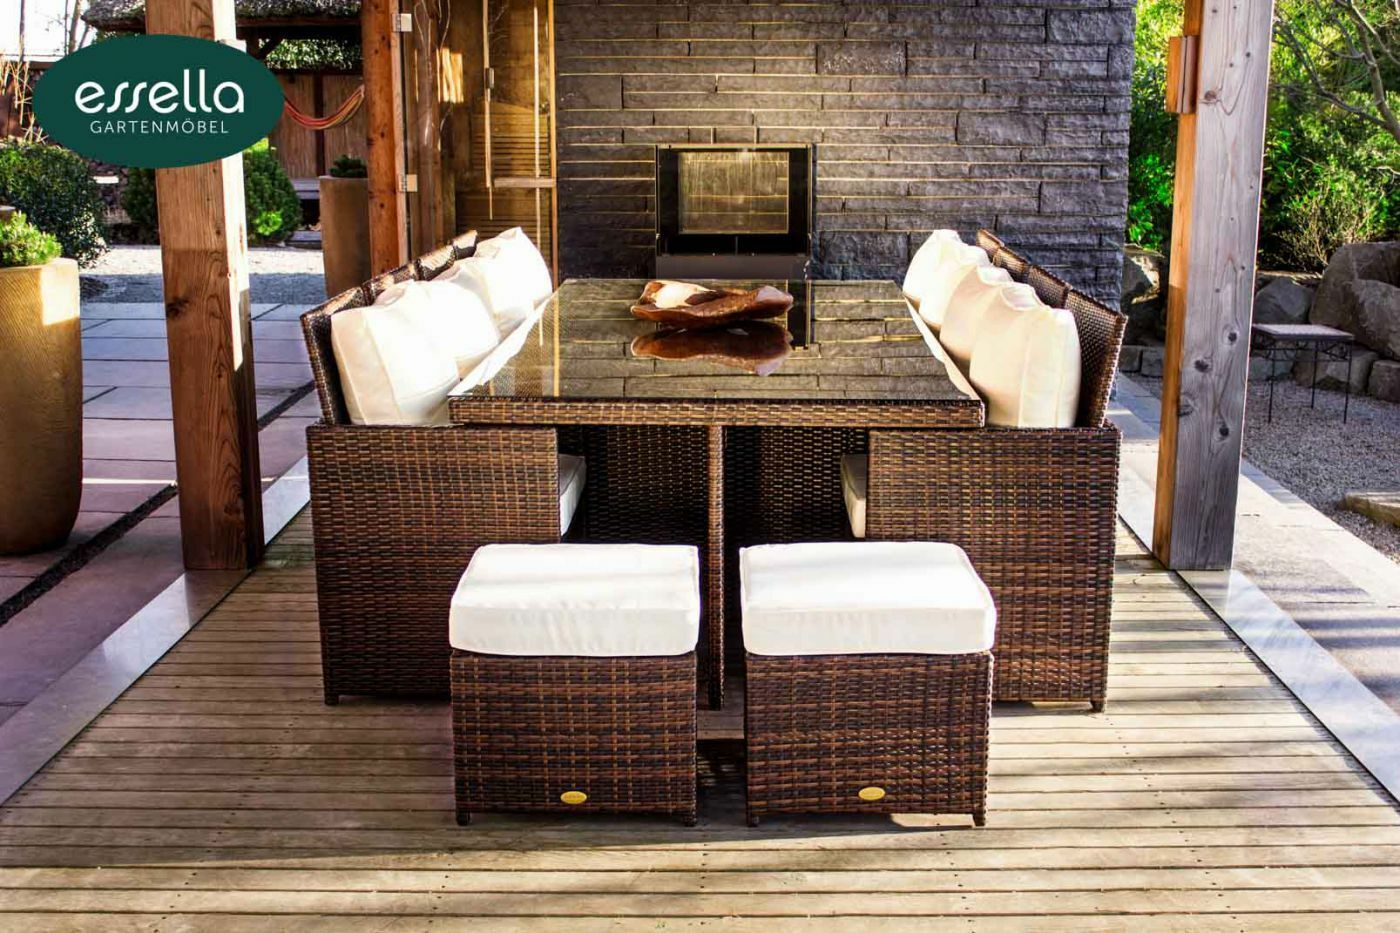 essella polyrattan sitzgruppe gartenm bel essgruppe rattan gartenset cube w rfel eur. Black Bedroom Furniture Sets. Home Design Ideas